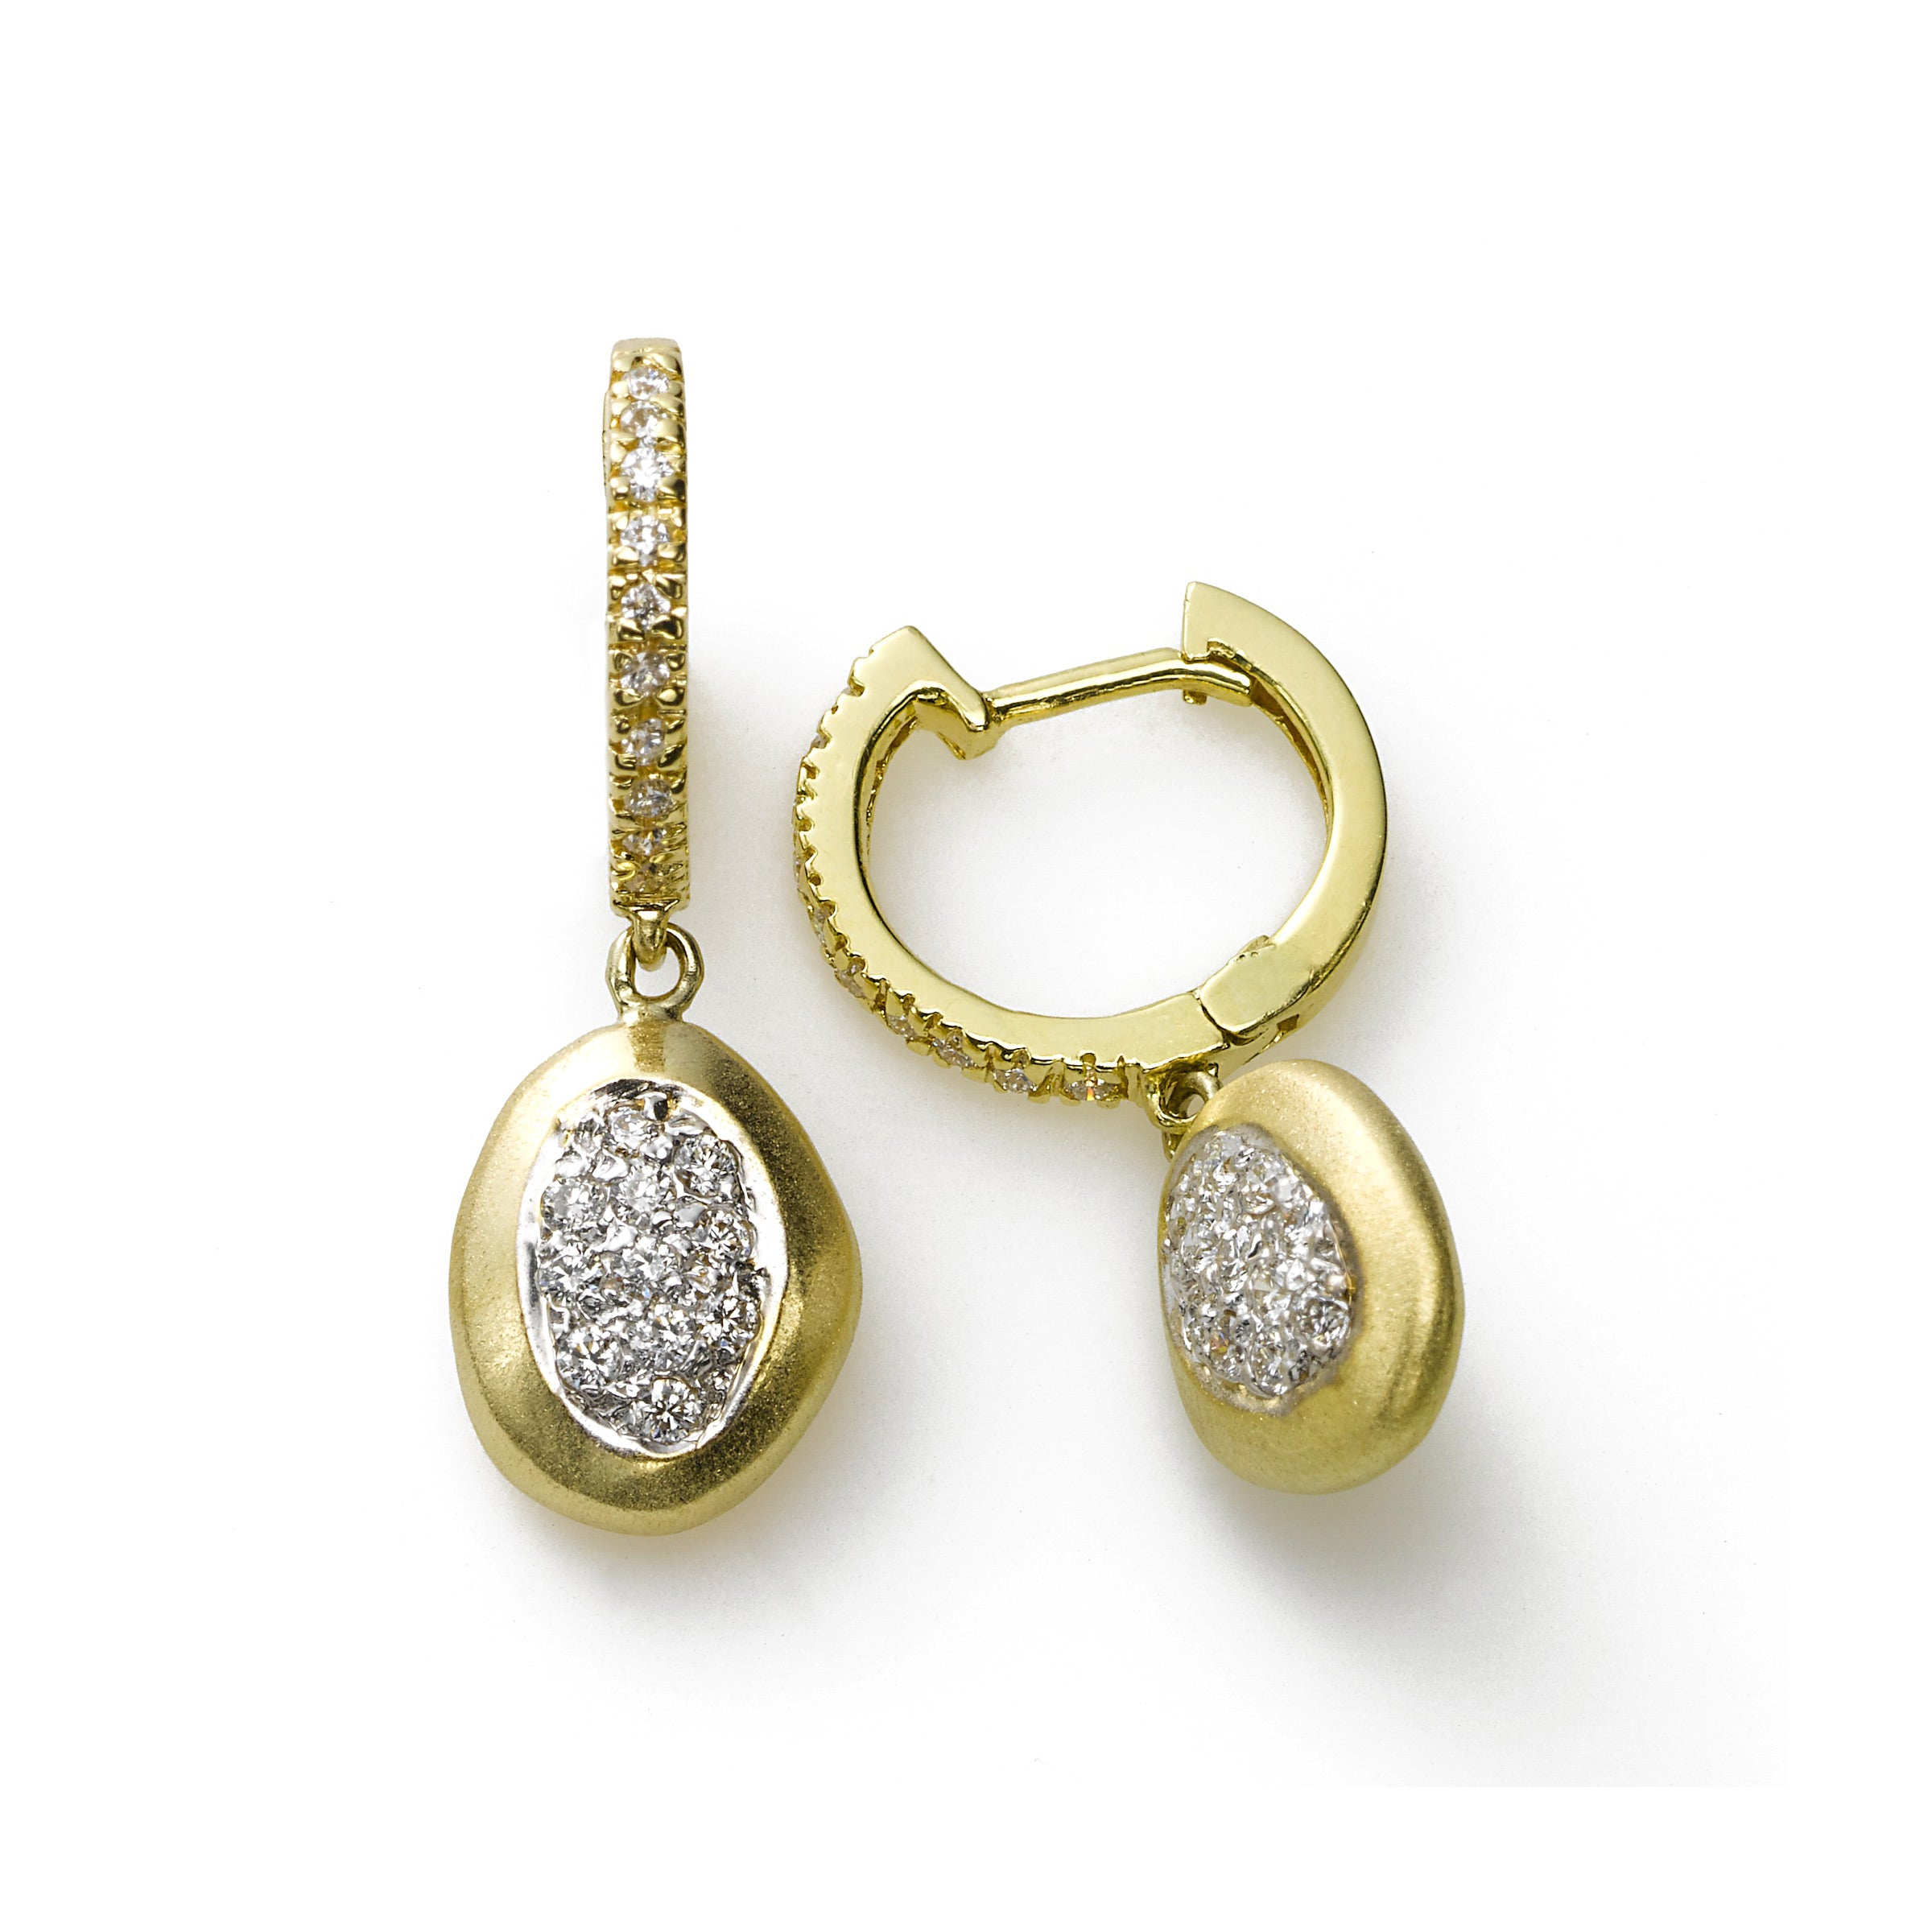 Satin Finish Oval Diamond Drop Earring, .40 Carat, 14K Yellow Gold